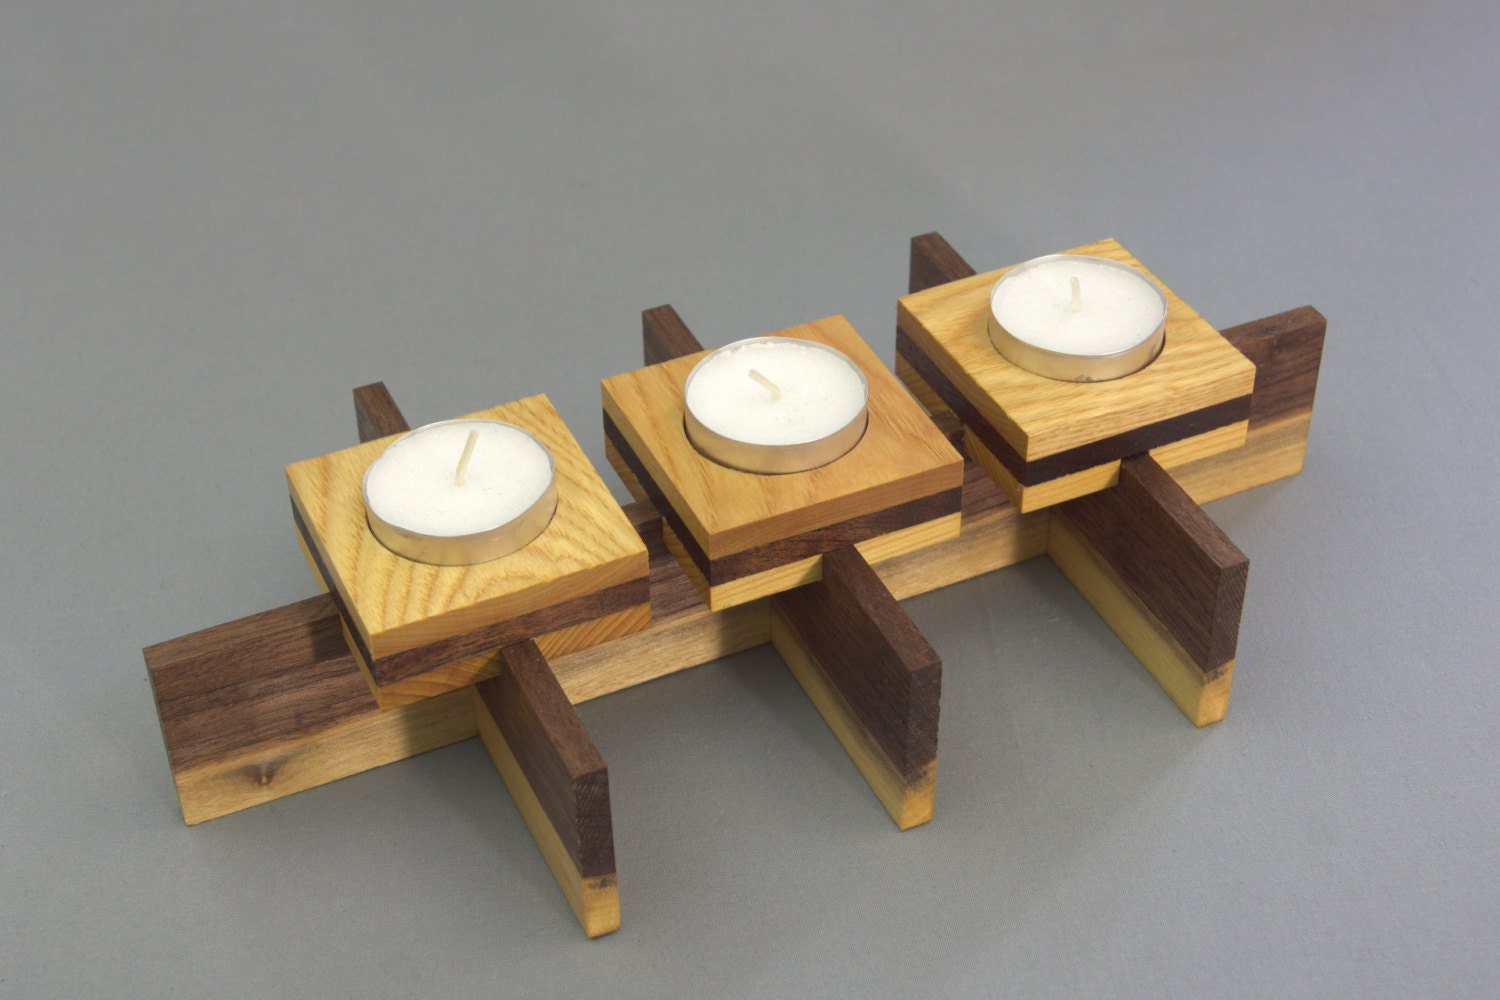 Tea candle holder light centerpiece wooden